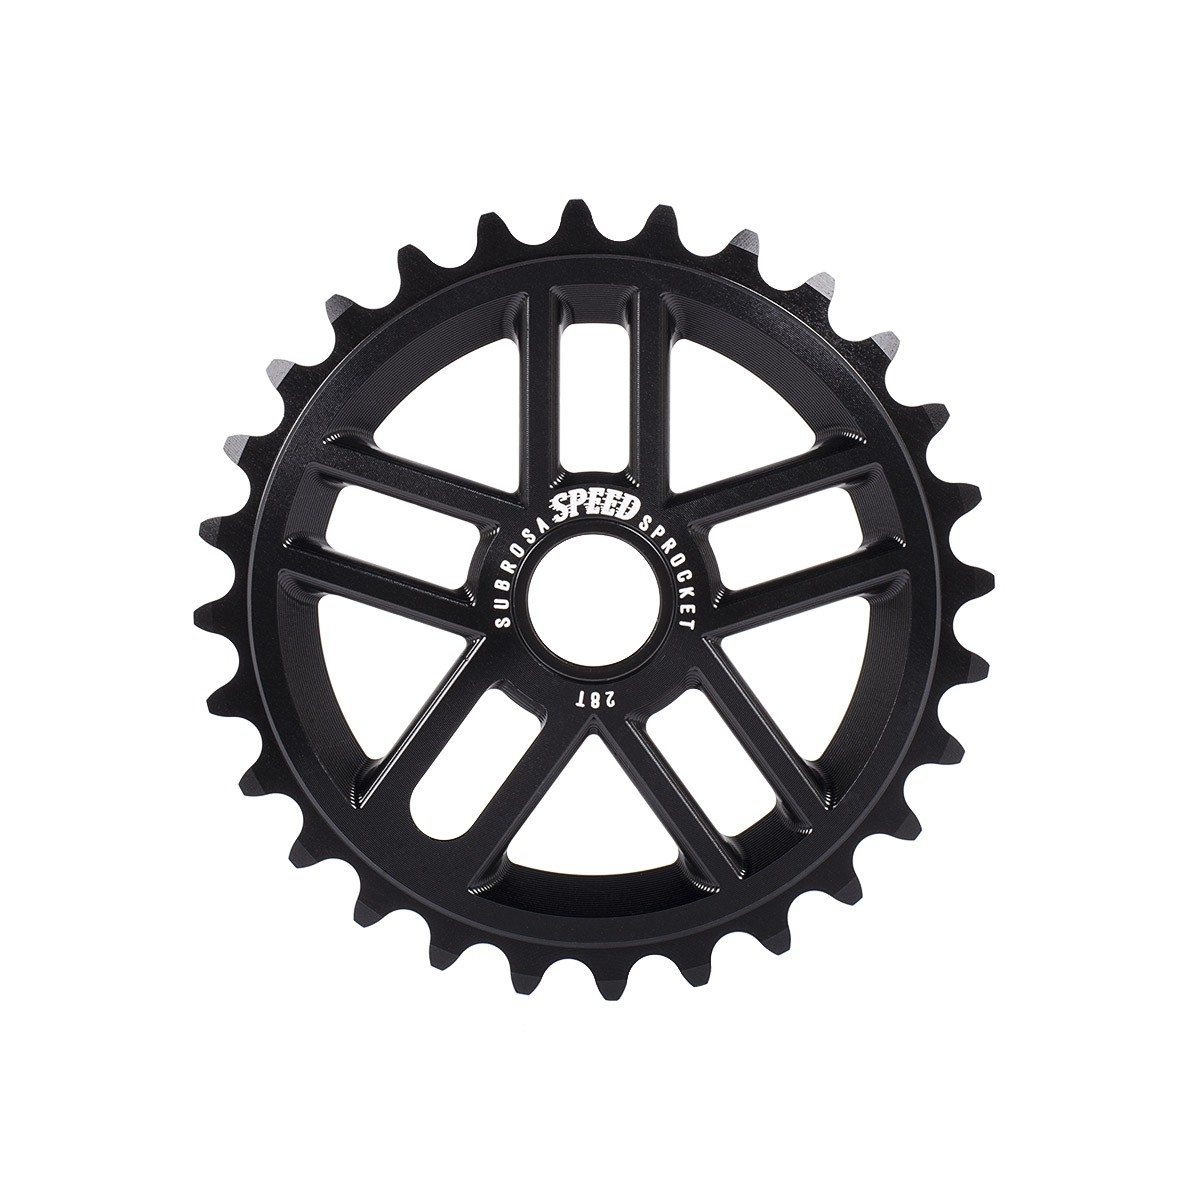 Couronne BMX Subrosa Speed Sprocket 25 dts Noir mat